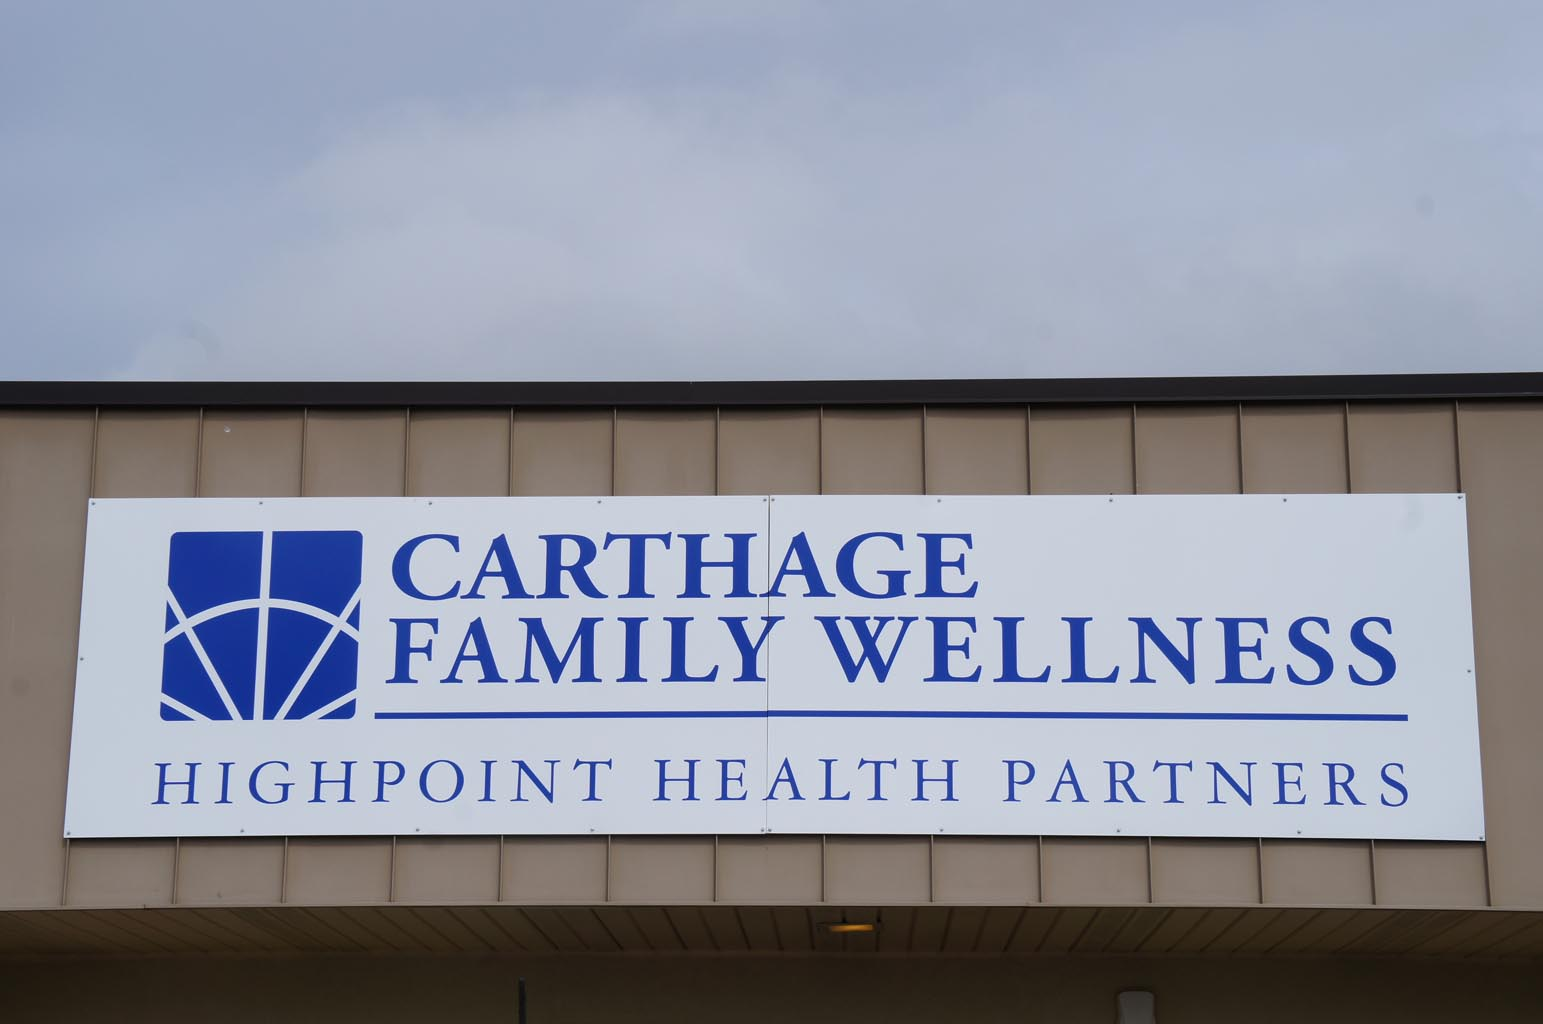 Carthage Family Wellness Front Entrance Sign